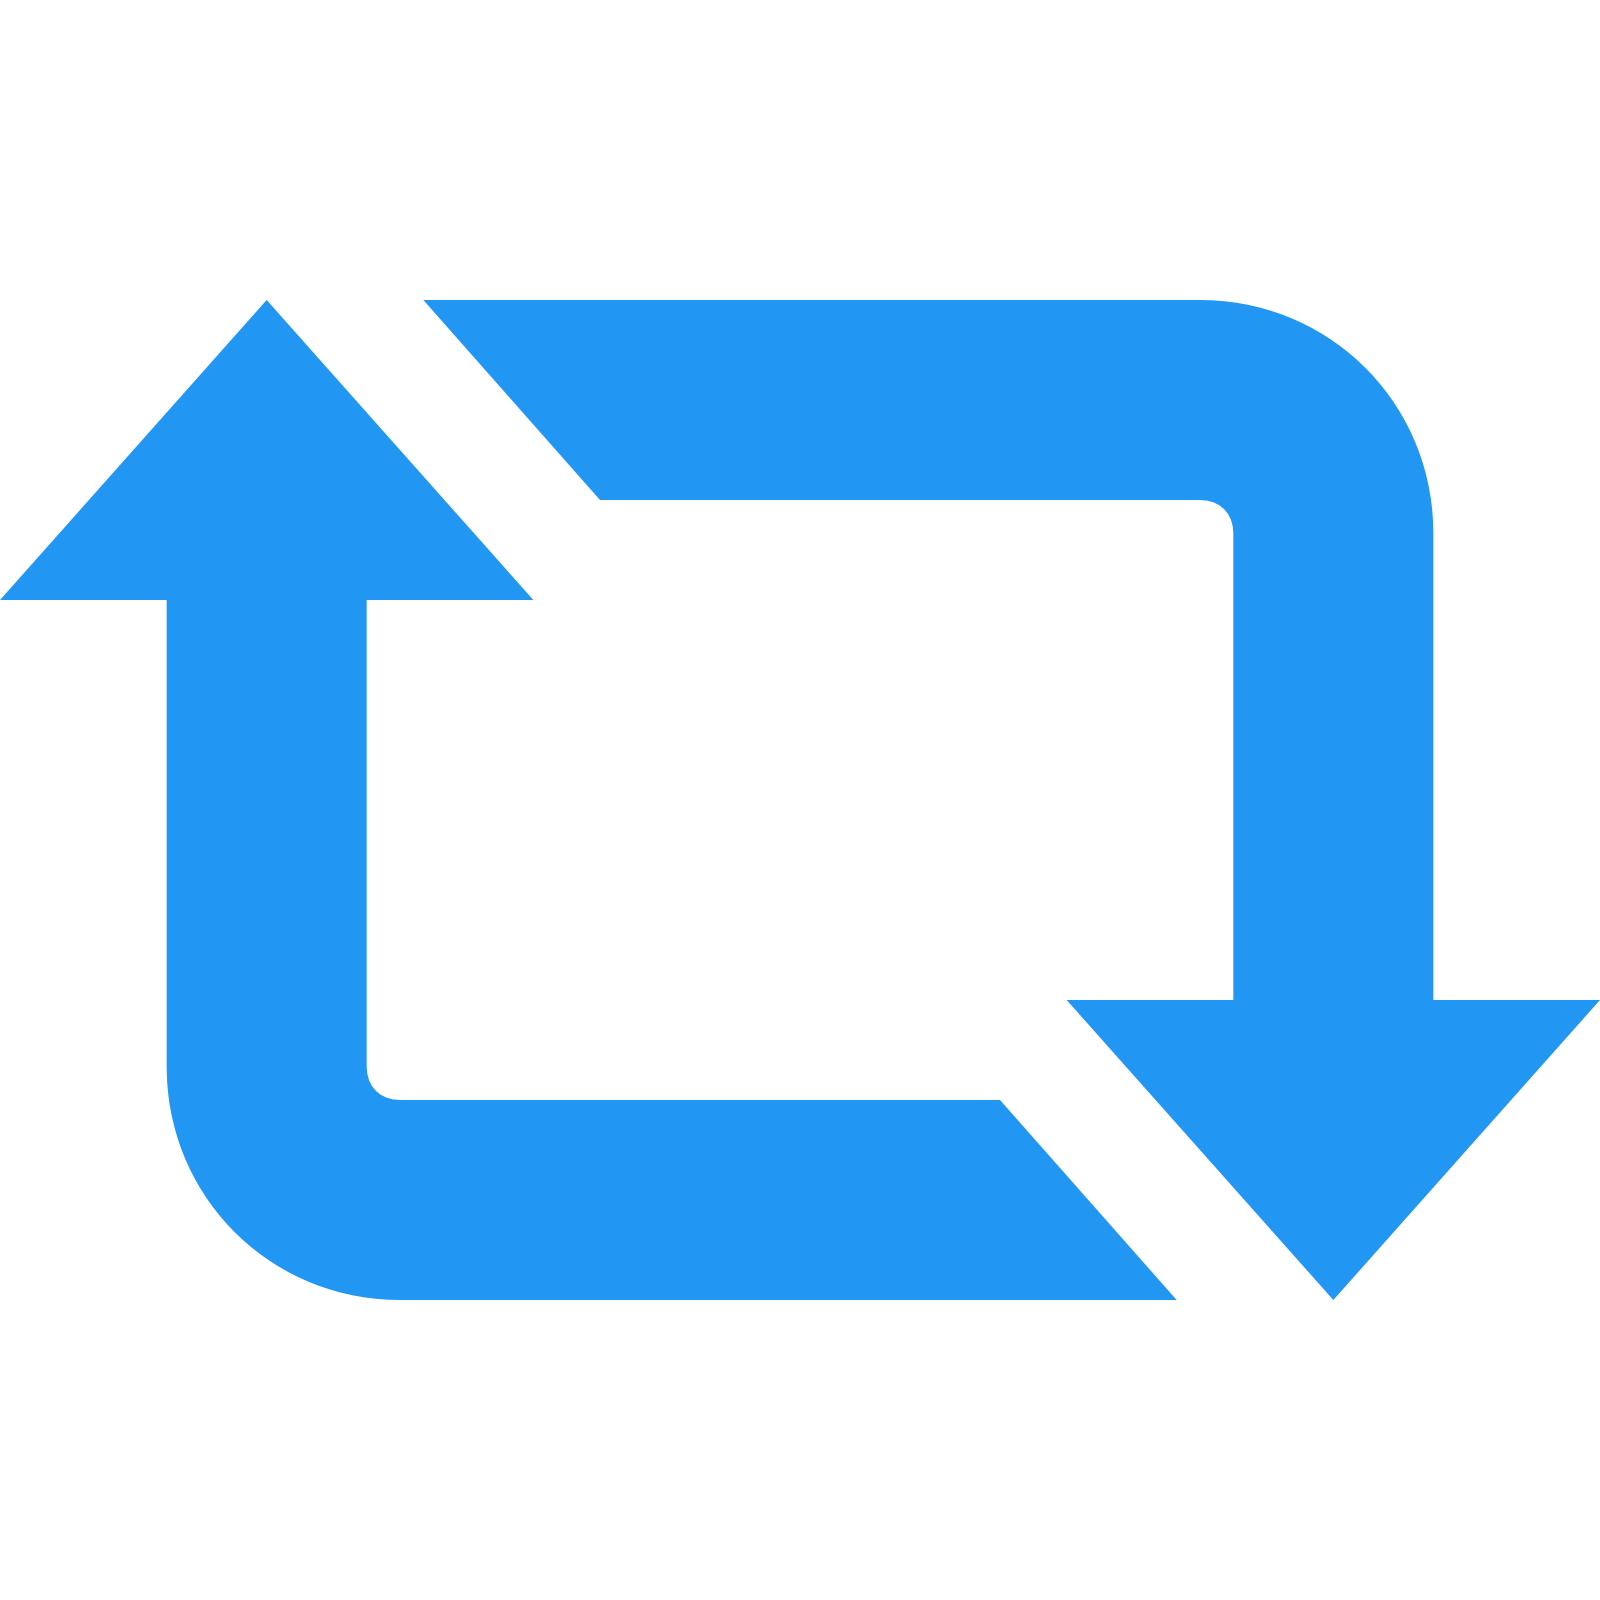 Download Button Computer Twitter Icons PNG Download Free.